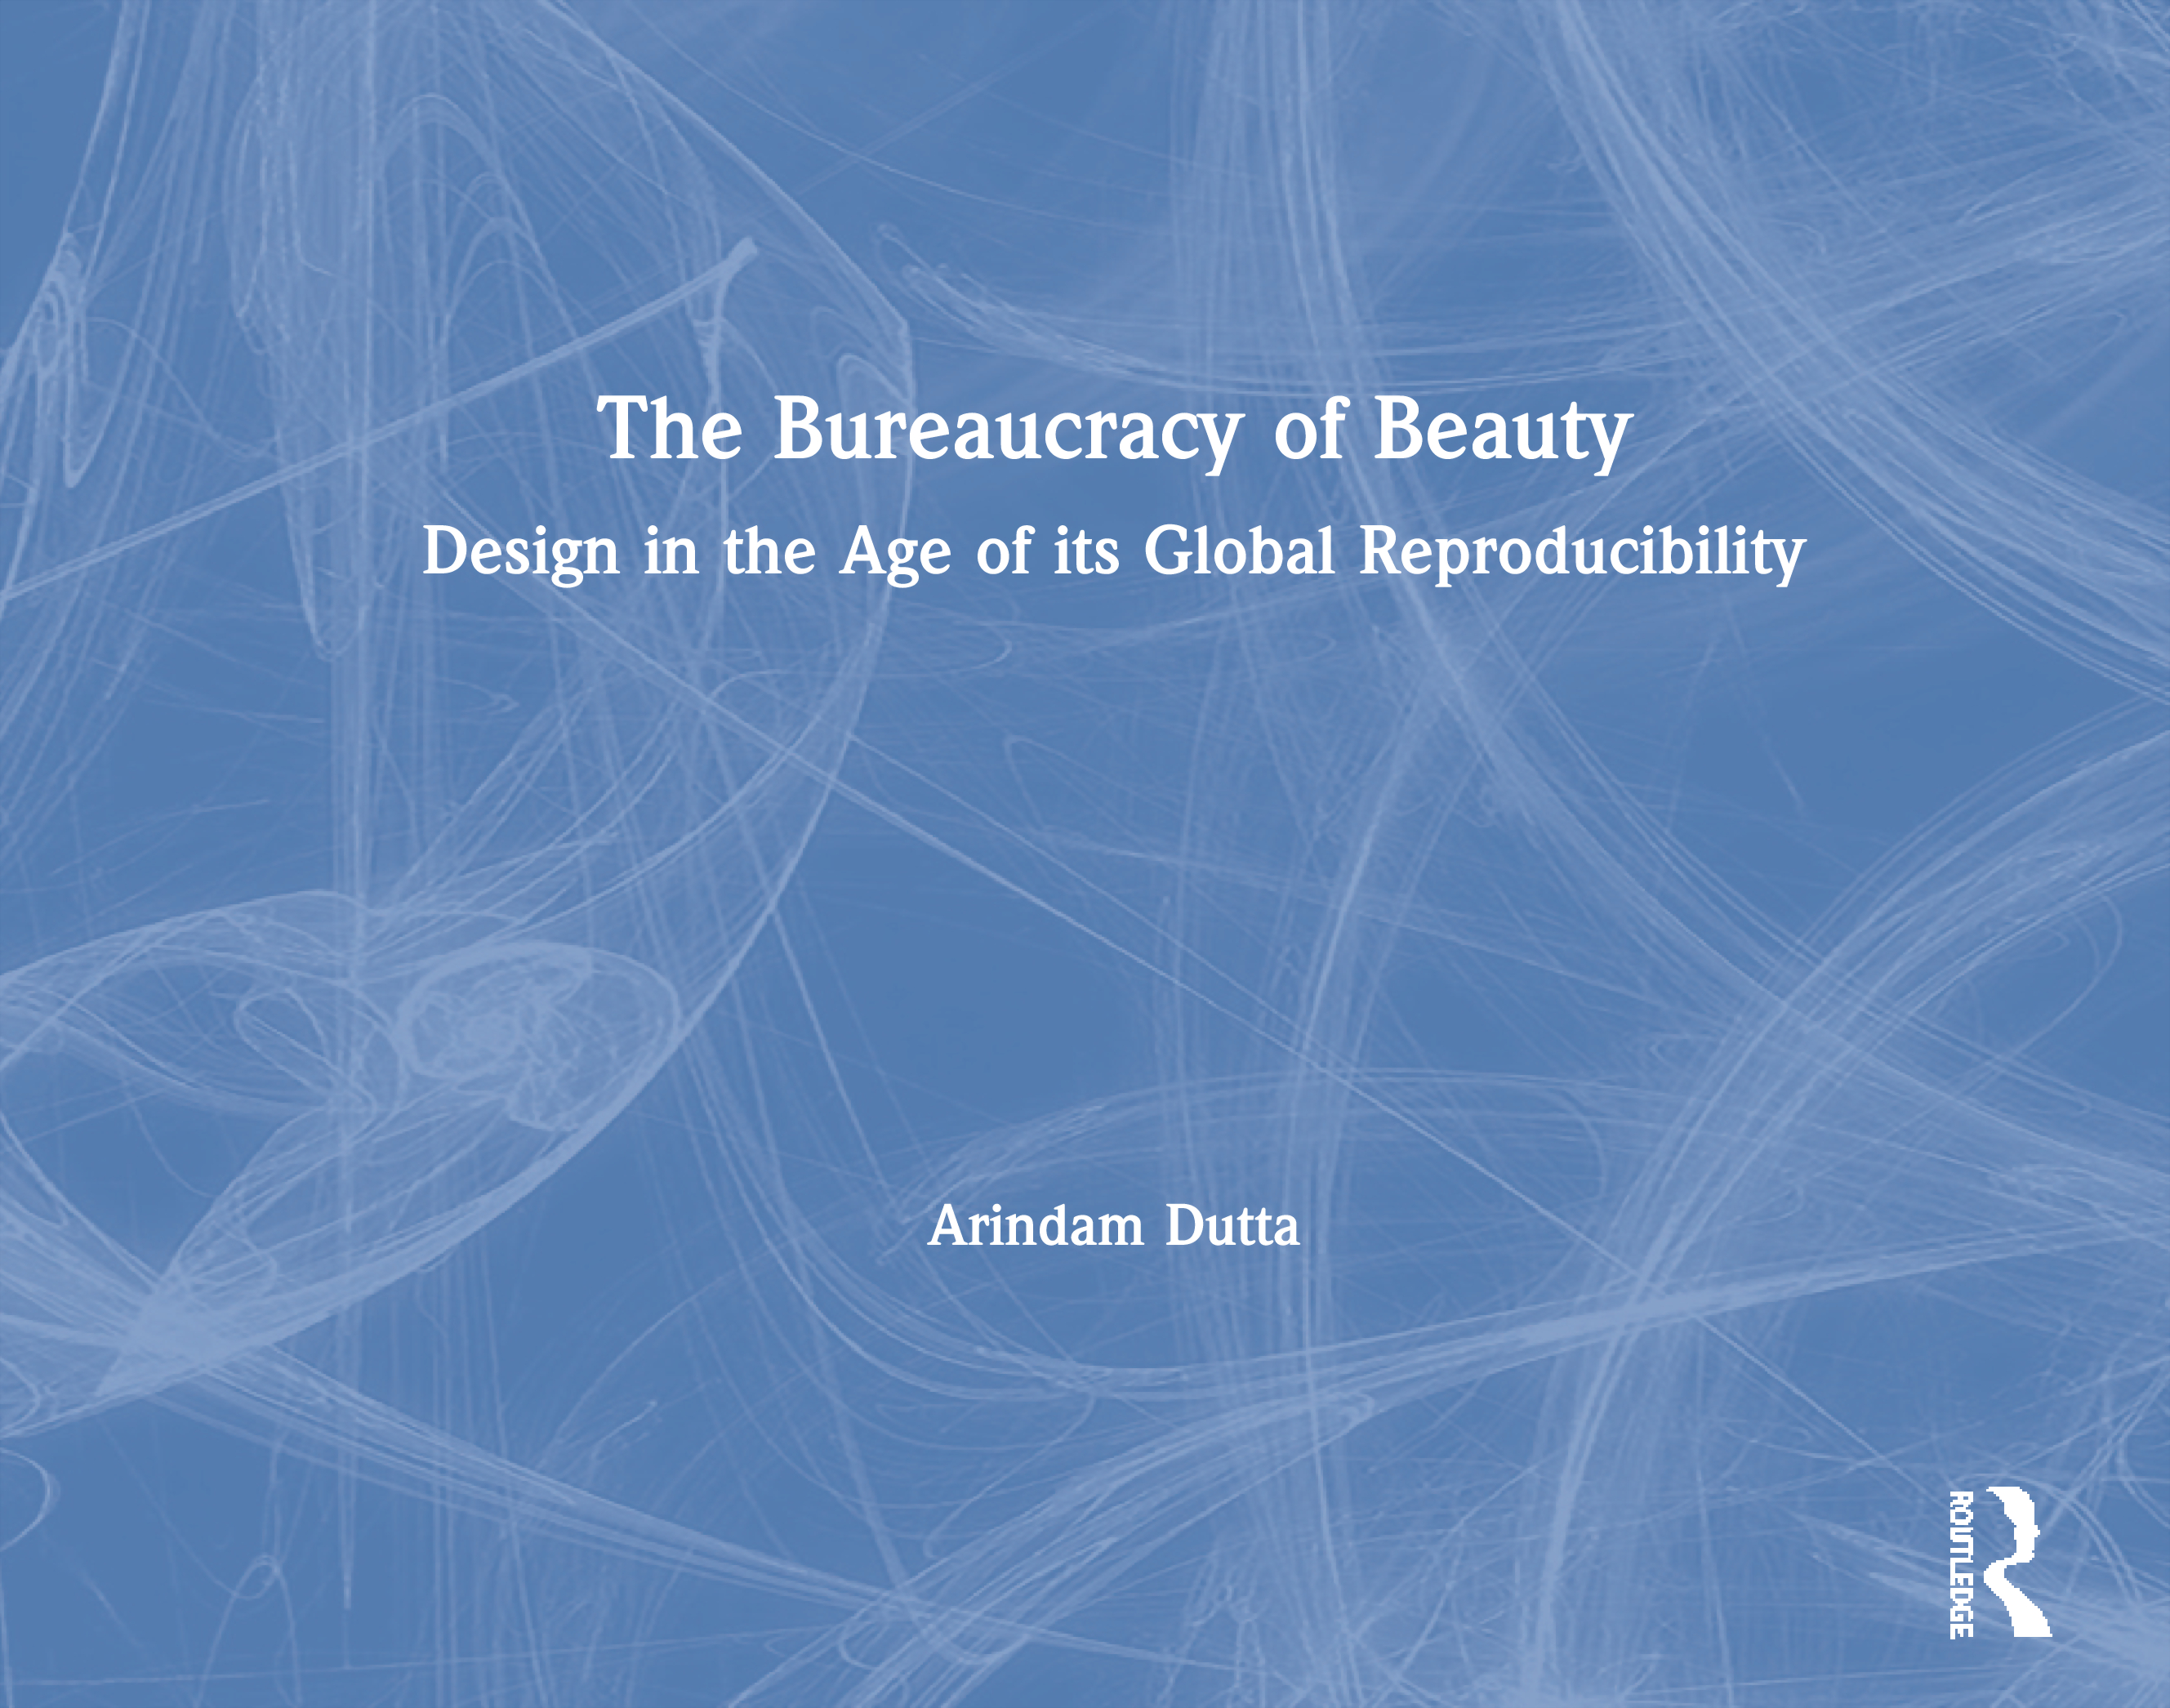 The Bureaucracy of Beauty: Design in the Age of its Global Reproducibility book cover